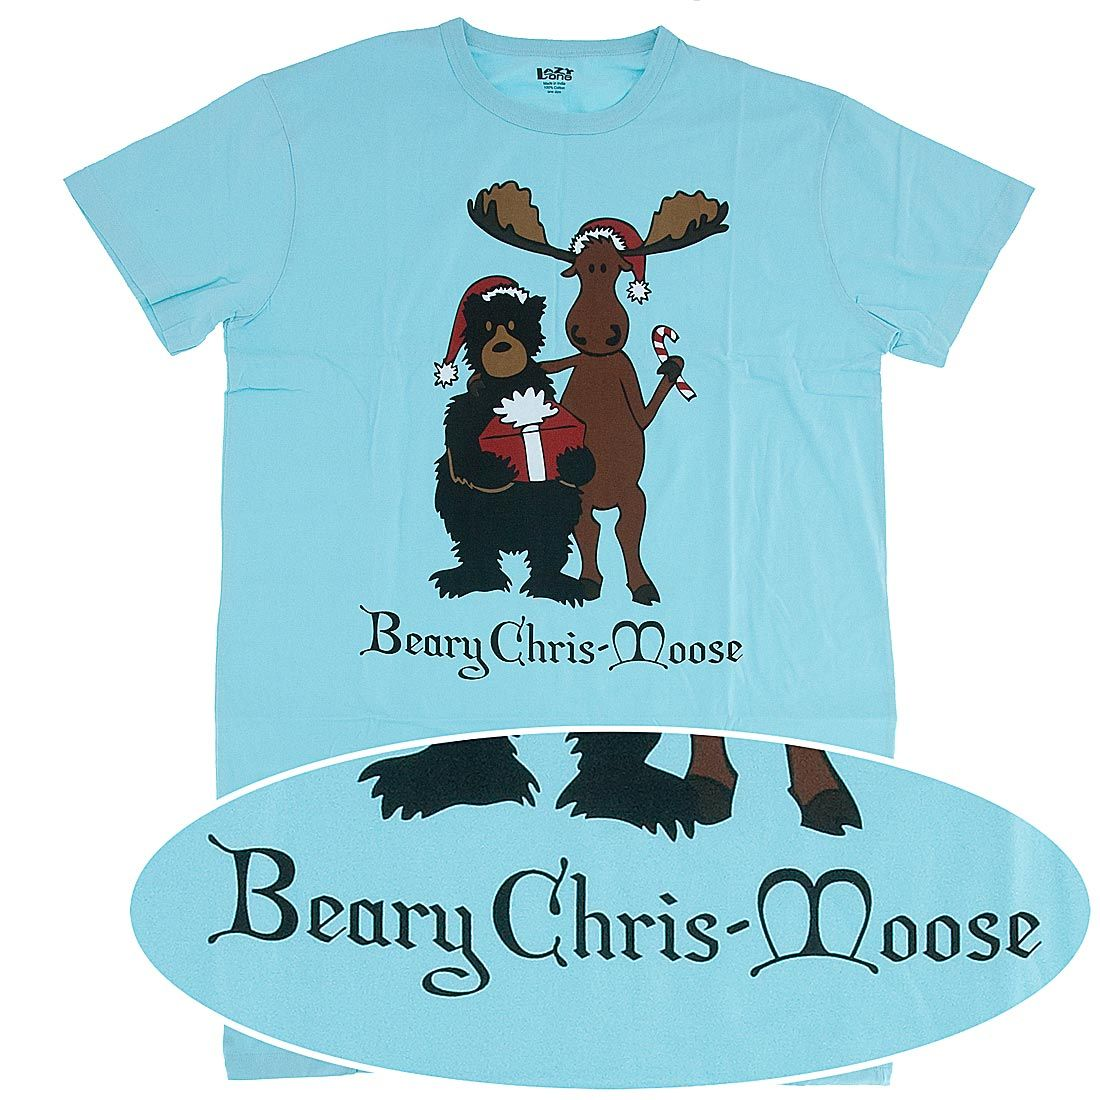 Lazy One Beary Chris-Moose Christmas Nightshirt for Women - Lazy One Cotton  Knit Nightshirts for Women  Buy Two Save  5 e8d29ed57